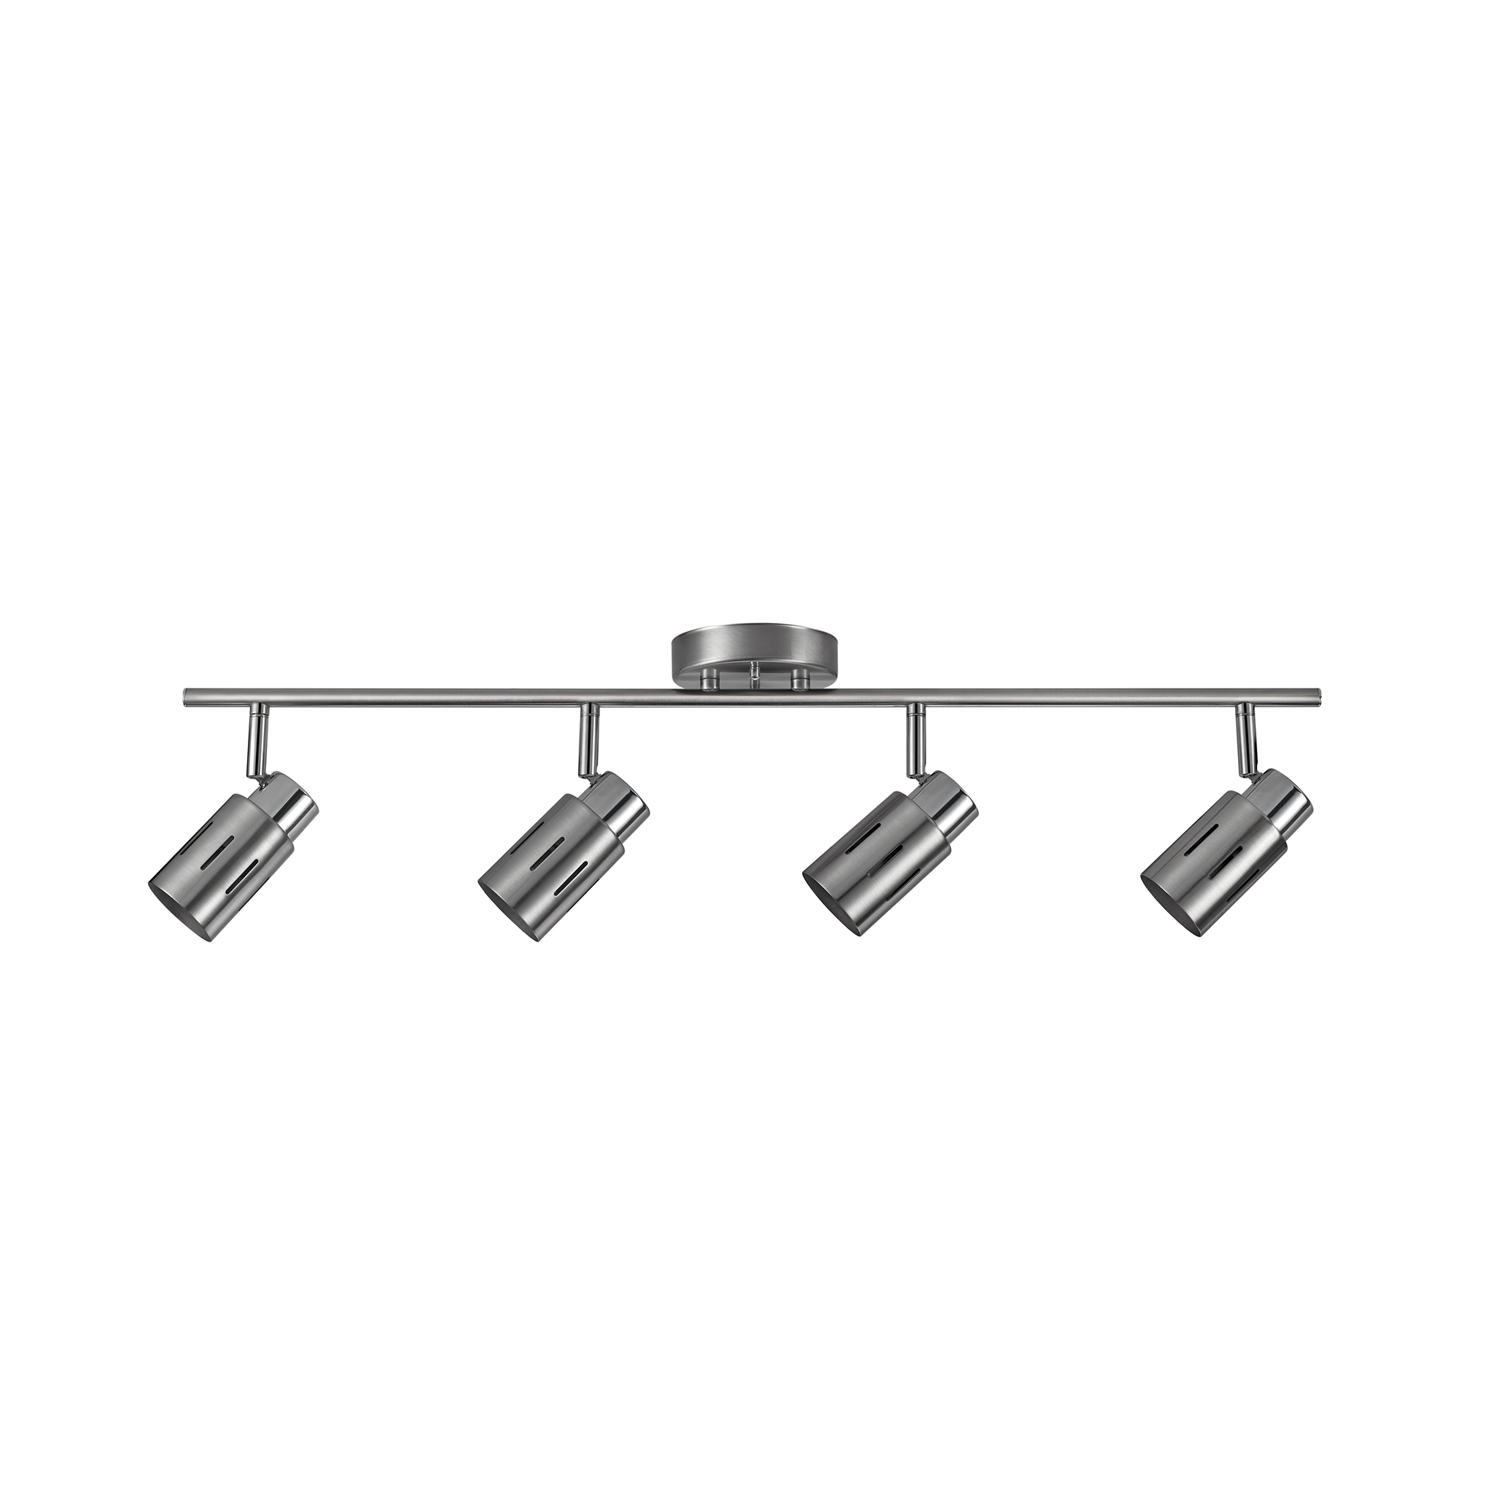 Globe Electric 26 Watt Kenneth 4-Light Brushed Steel LED Track Light, Bulbs Included by Globe Electric